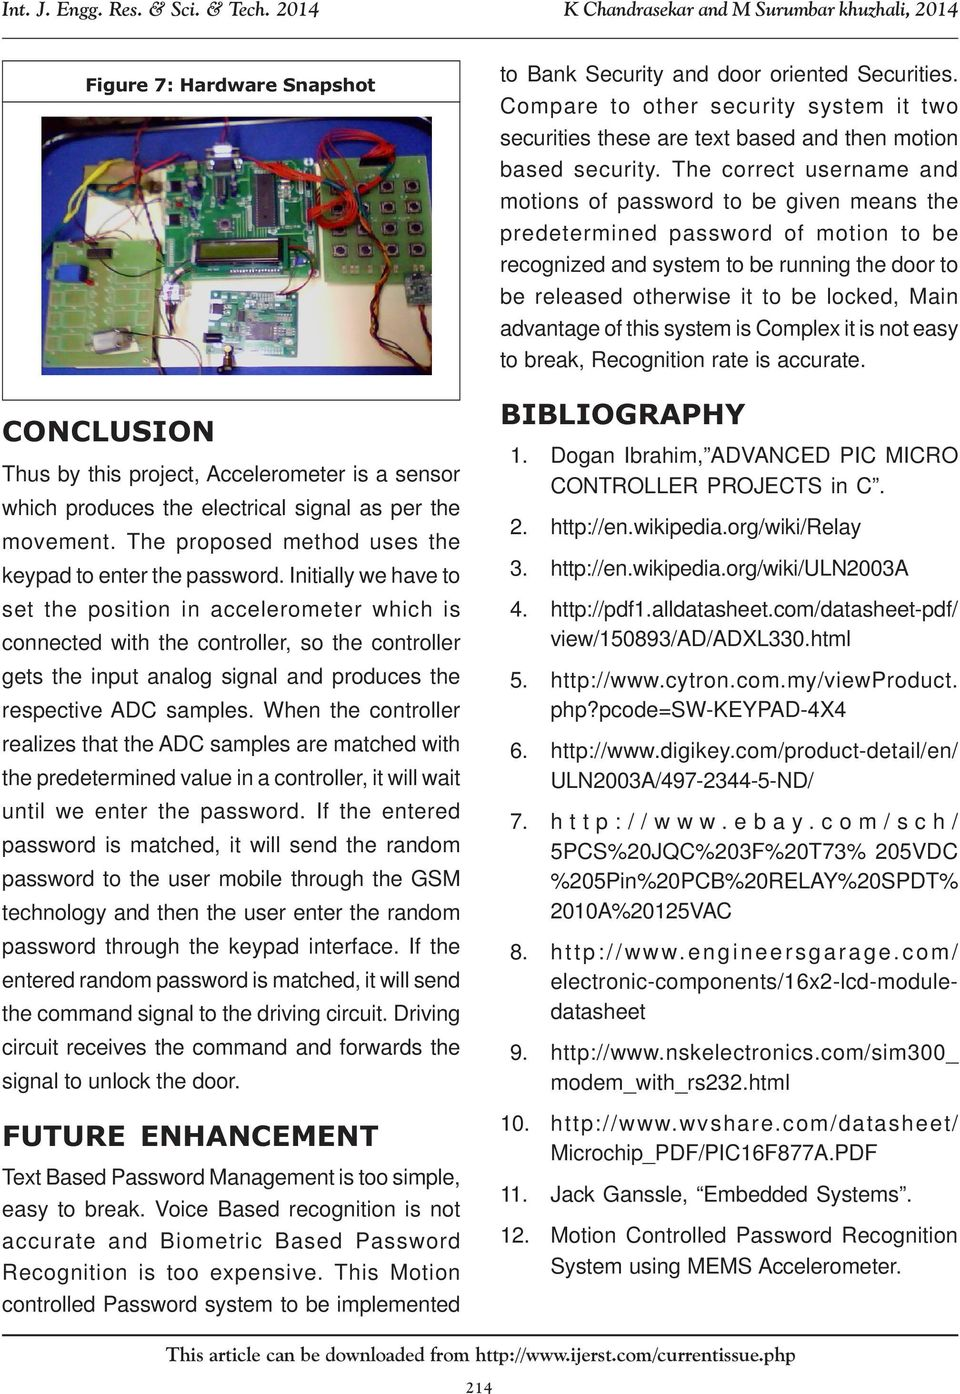 Controller Area Network Projects Dogan Ibrahim Pdf